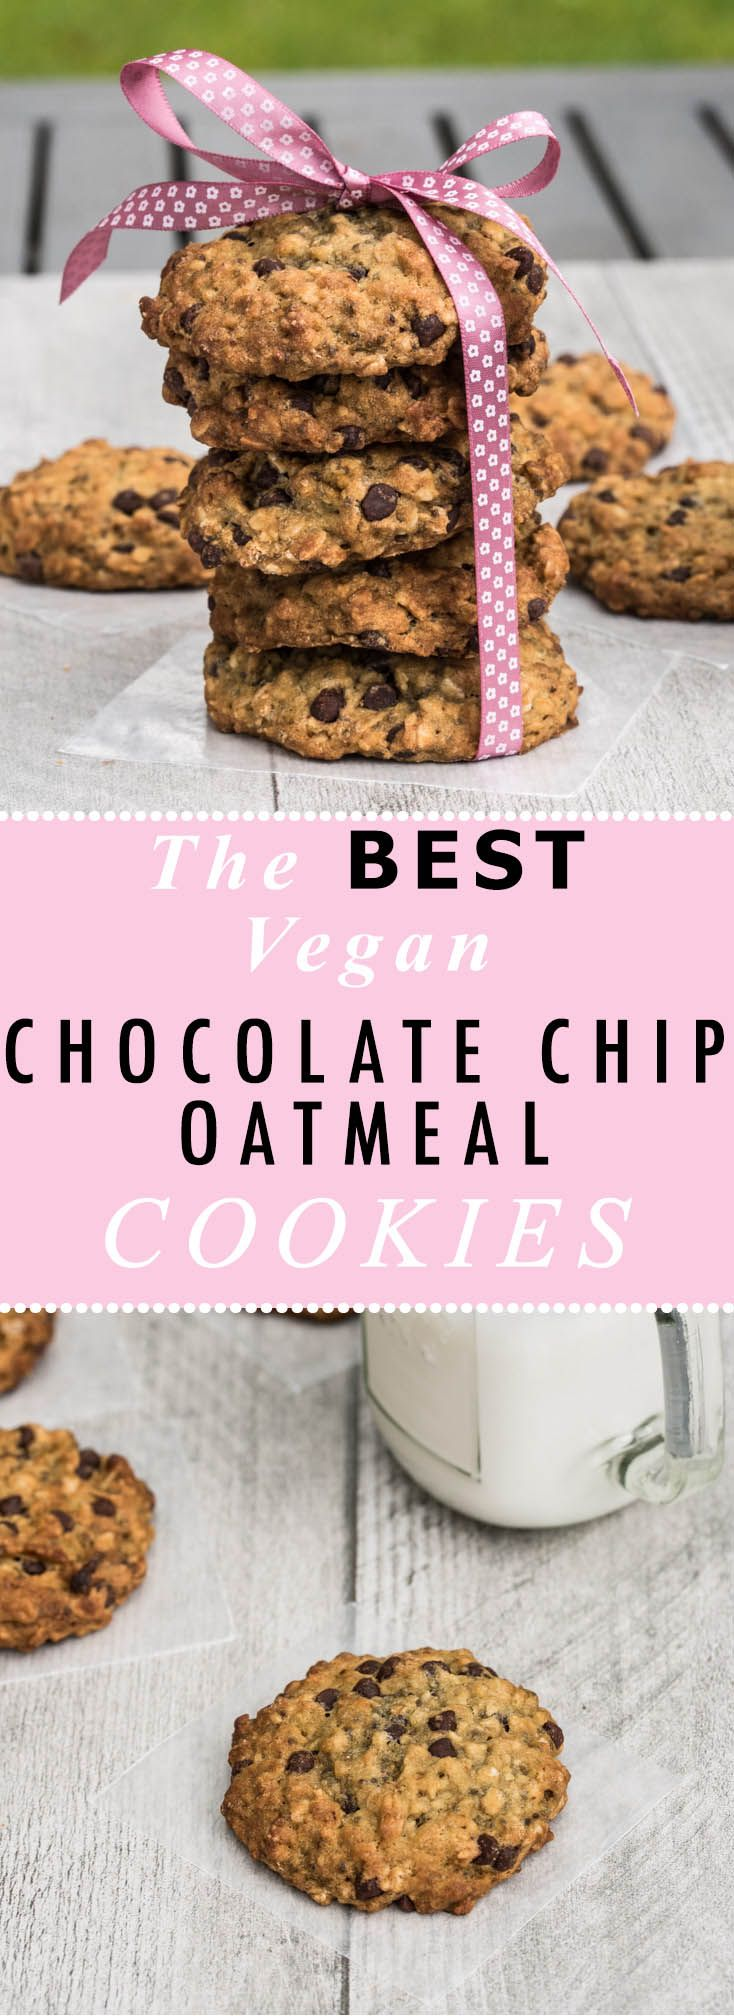 The BEST Vegan Chocolate Chip Oatmeal Cookies Recipe! Crispy on the outside and soft inside. They aren't overly sweet and have a few healthier ingredients in there to make these a bit more guiltless. /// VeganFamilyRecipes.com /// #dessert #cookie